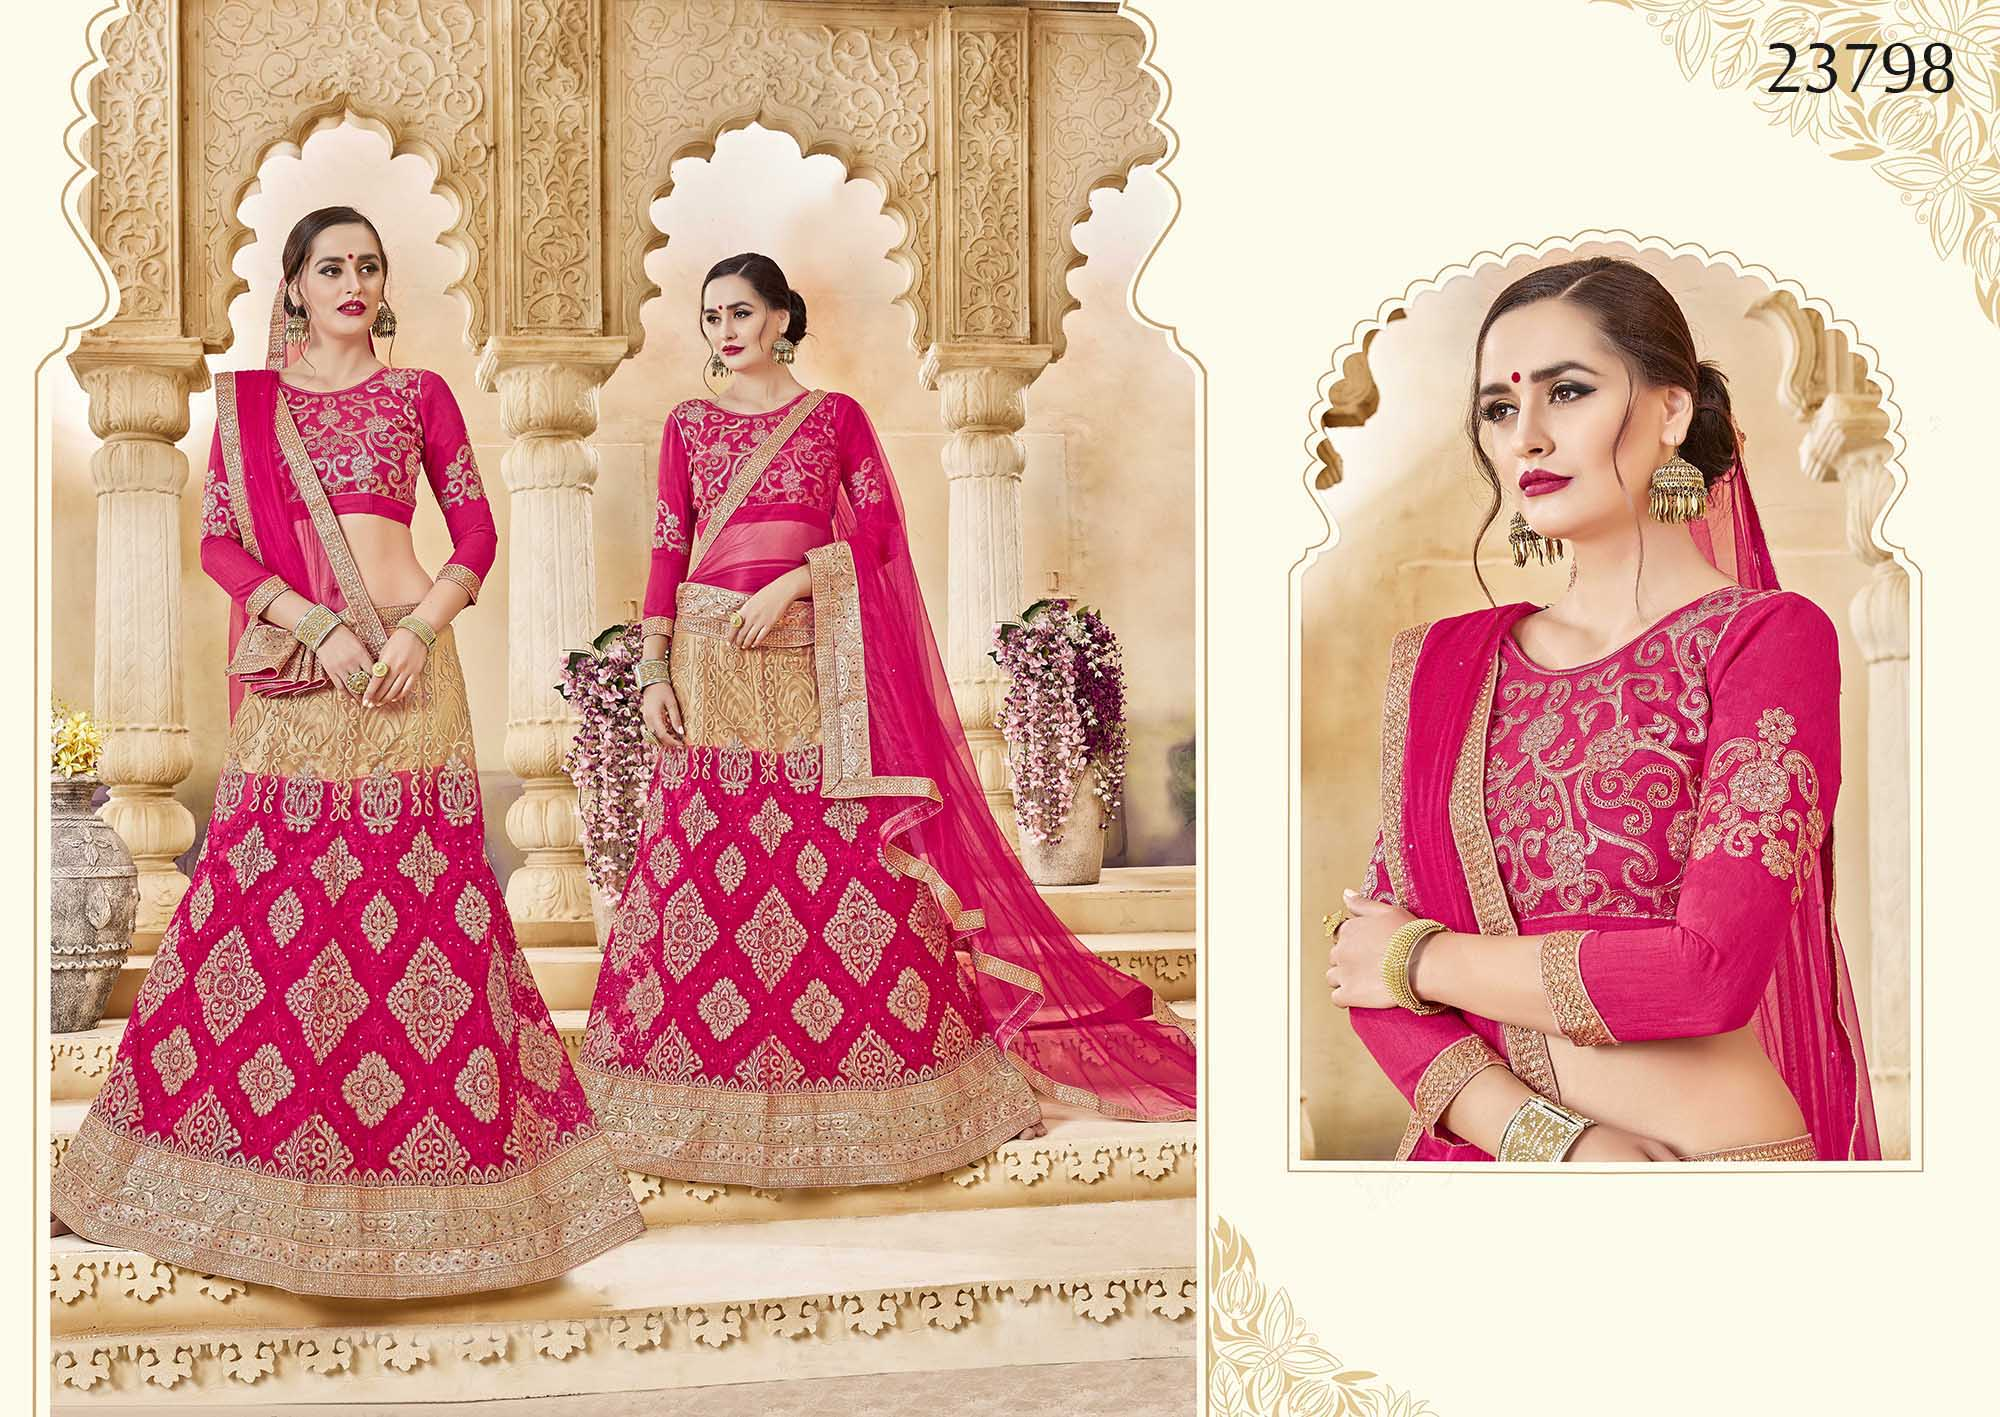 Royal bridal wear lehenga Irish 23798